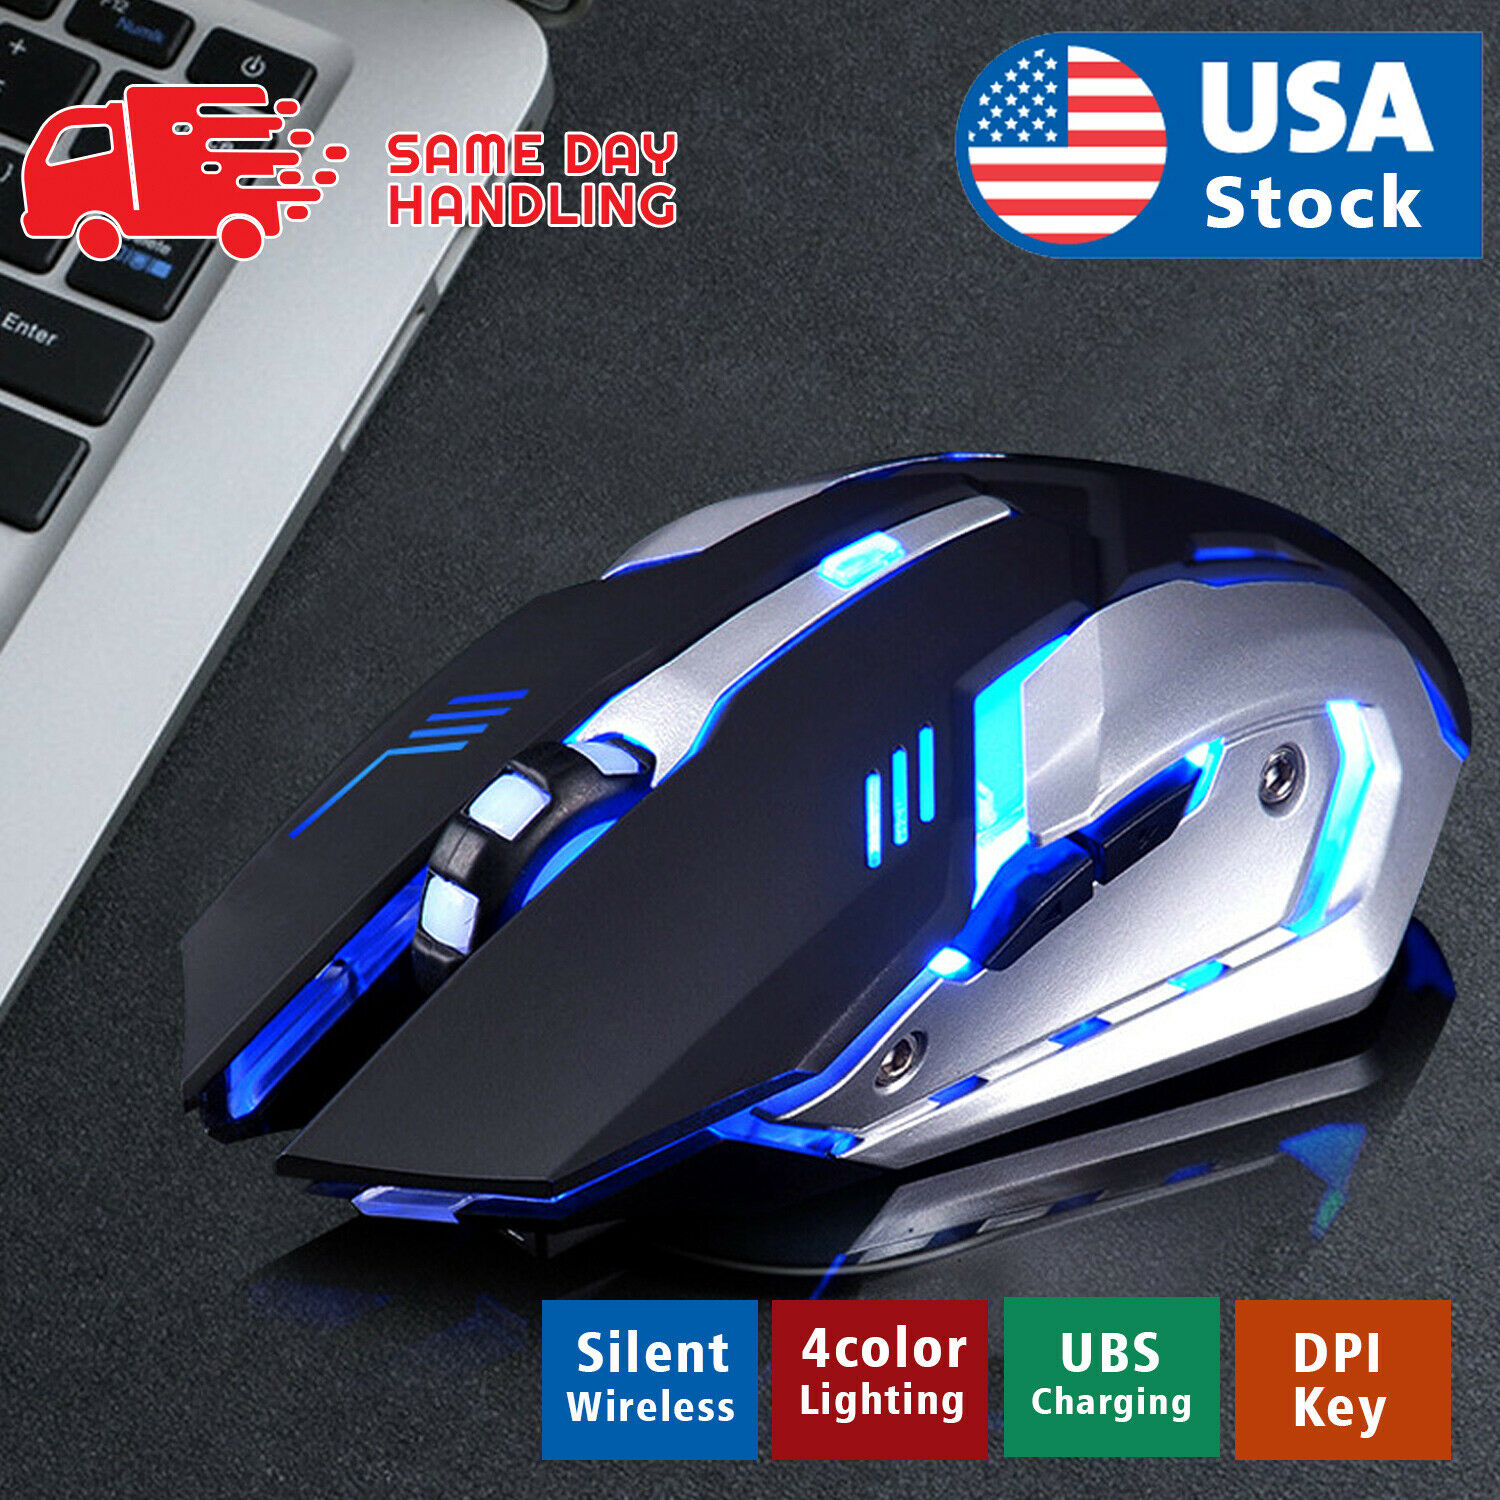 Gaming Mouse Rechargeable X7 Wireless Silent LED Backlit USB Optical Ergonomic A Computers/Tablets & Networking